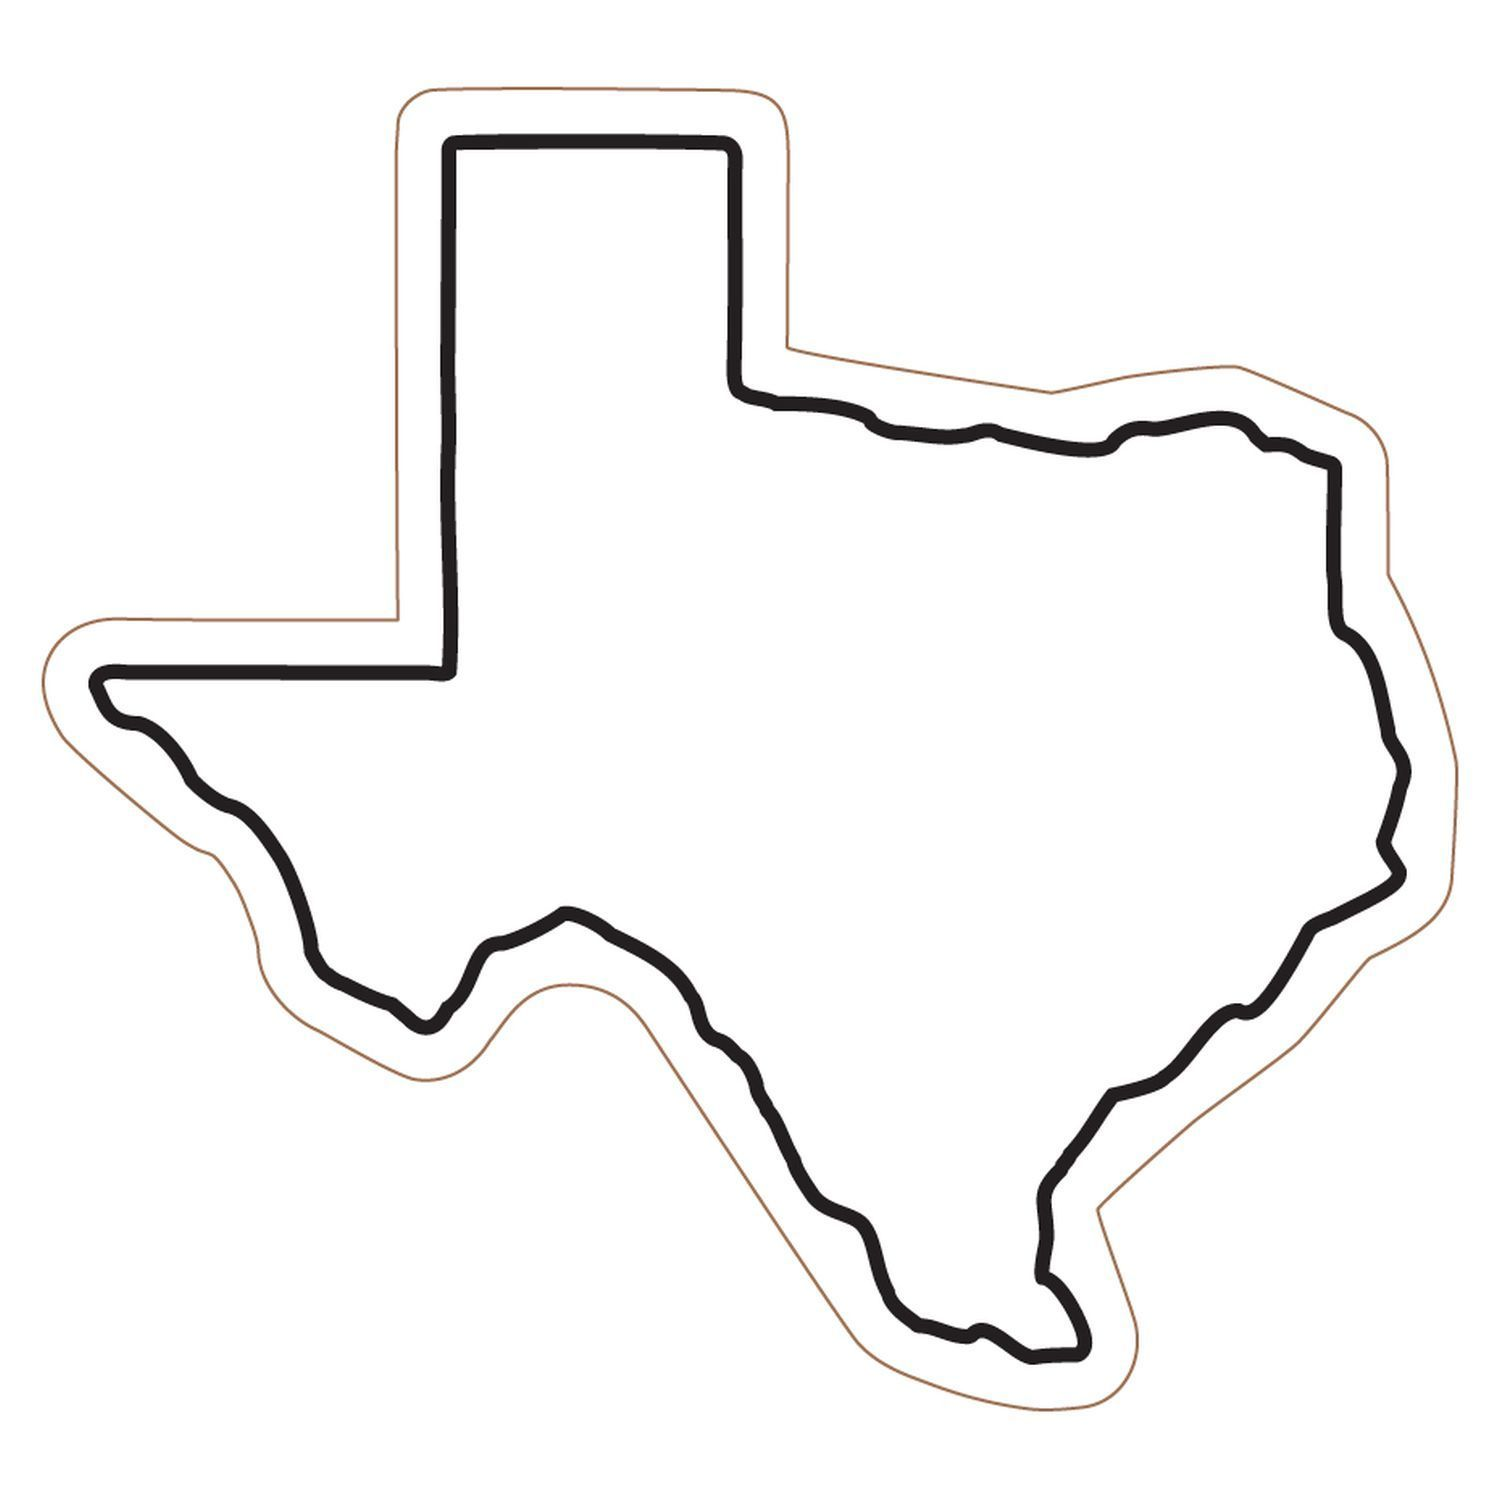 clip art library download Photos of map clip. Texas outline clipart